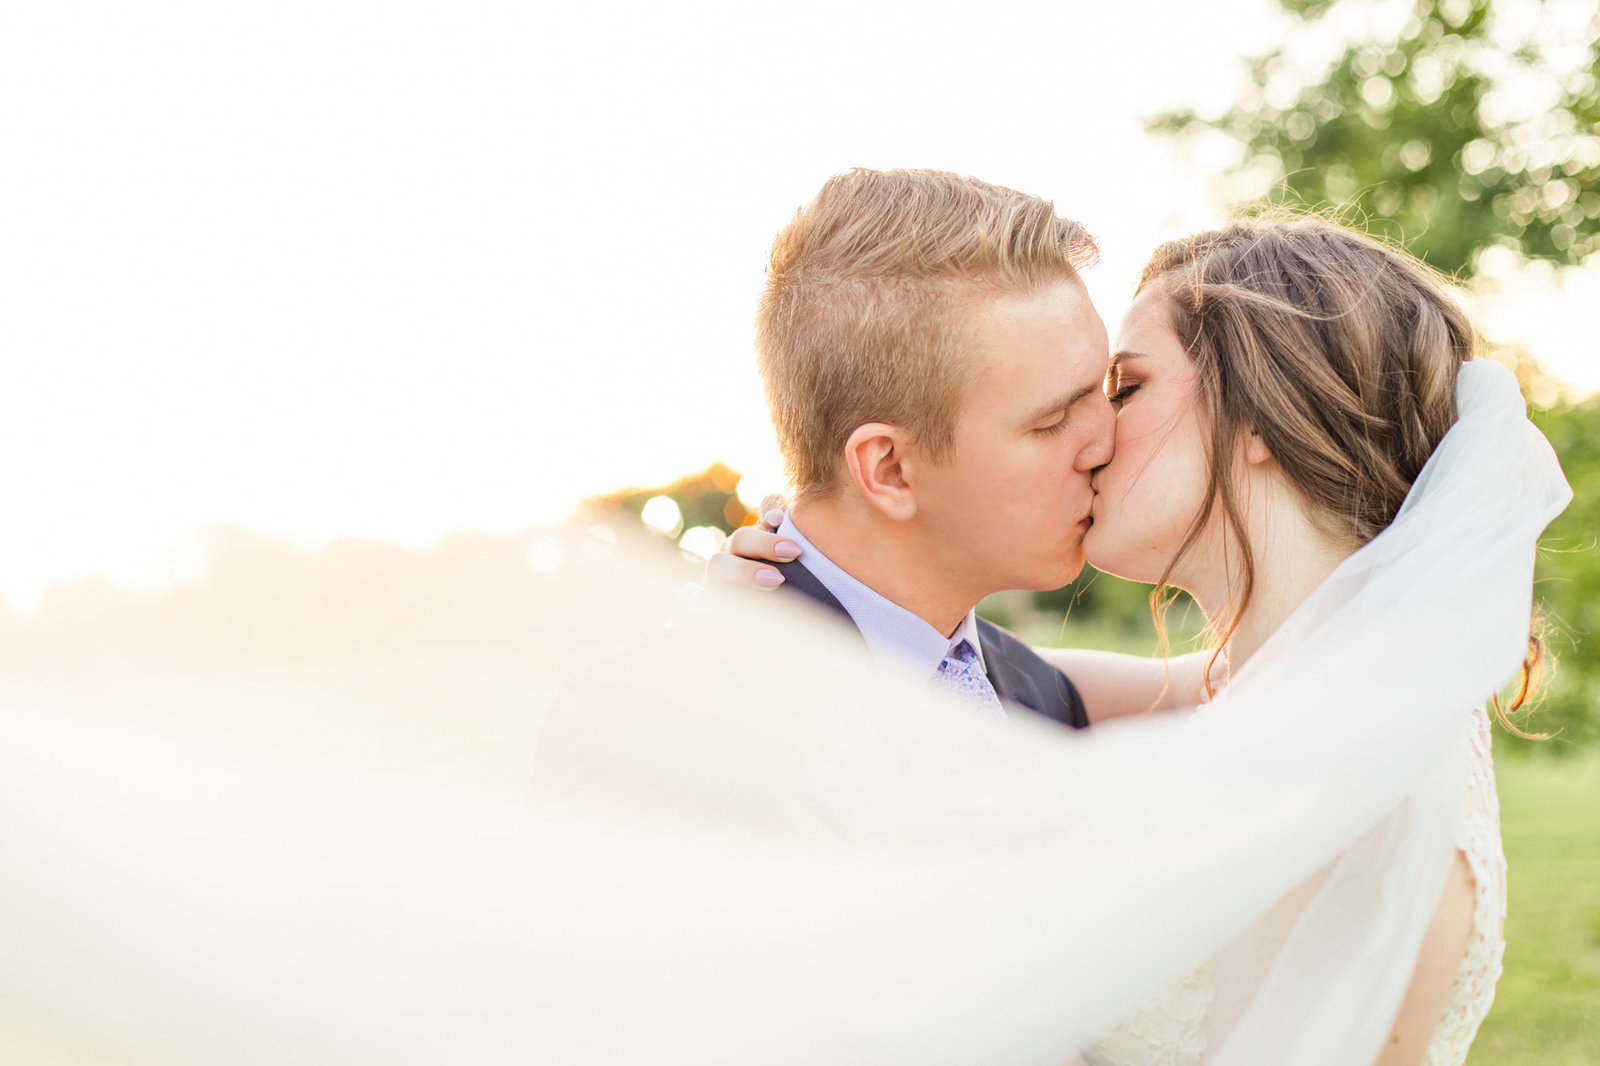 st-louis-wedding-photographer-belleville-alton-summer-spring-romantic-200